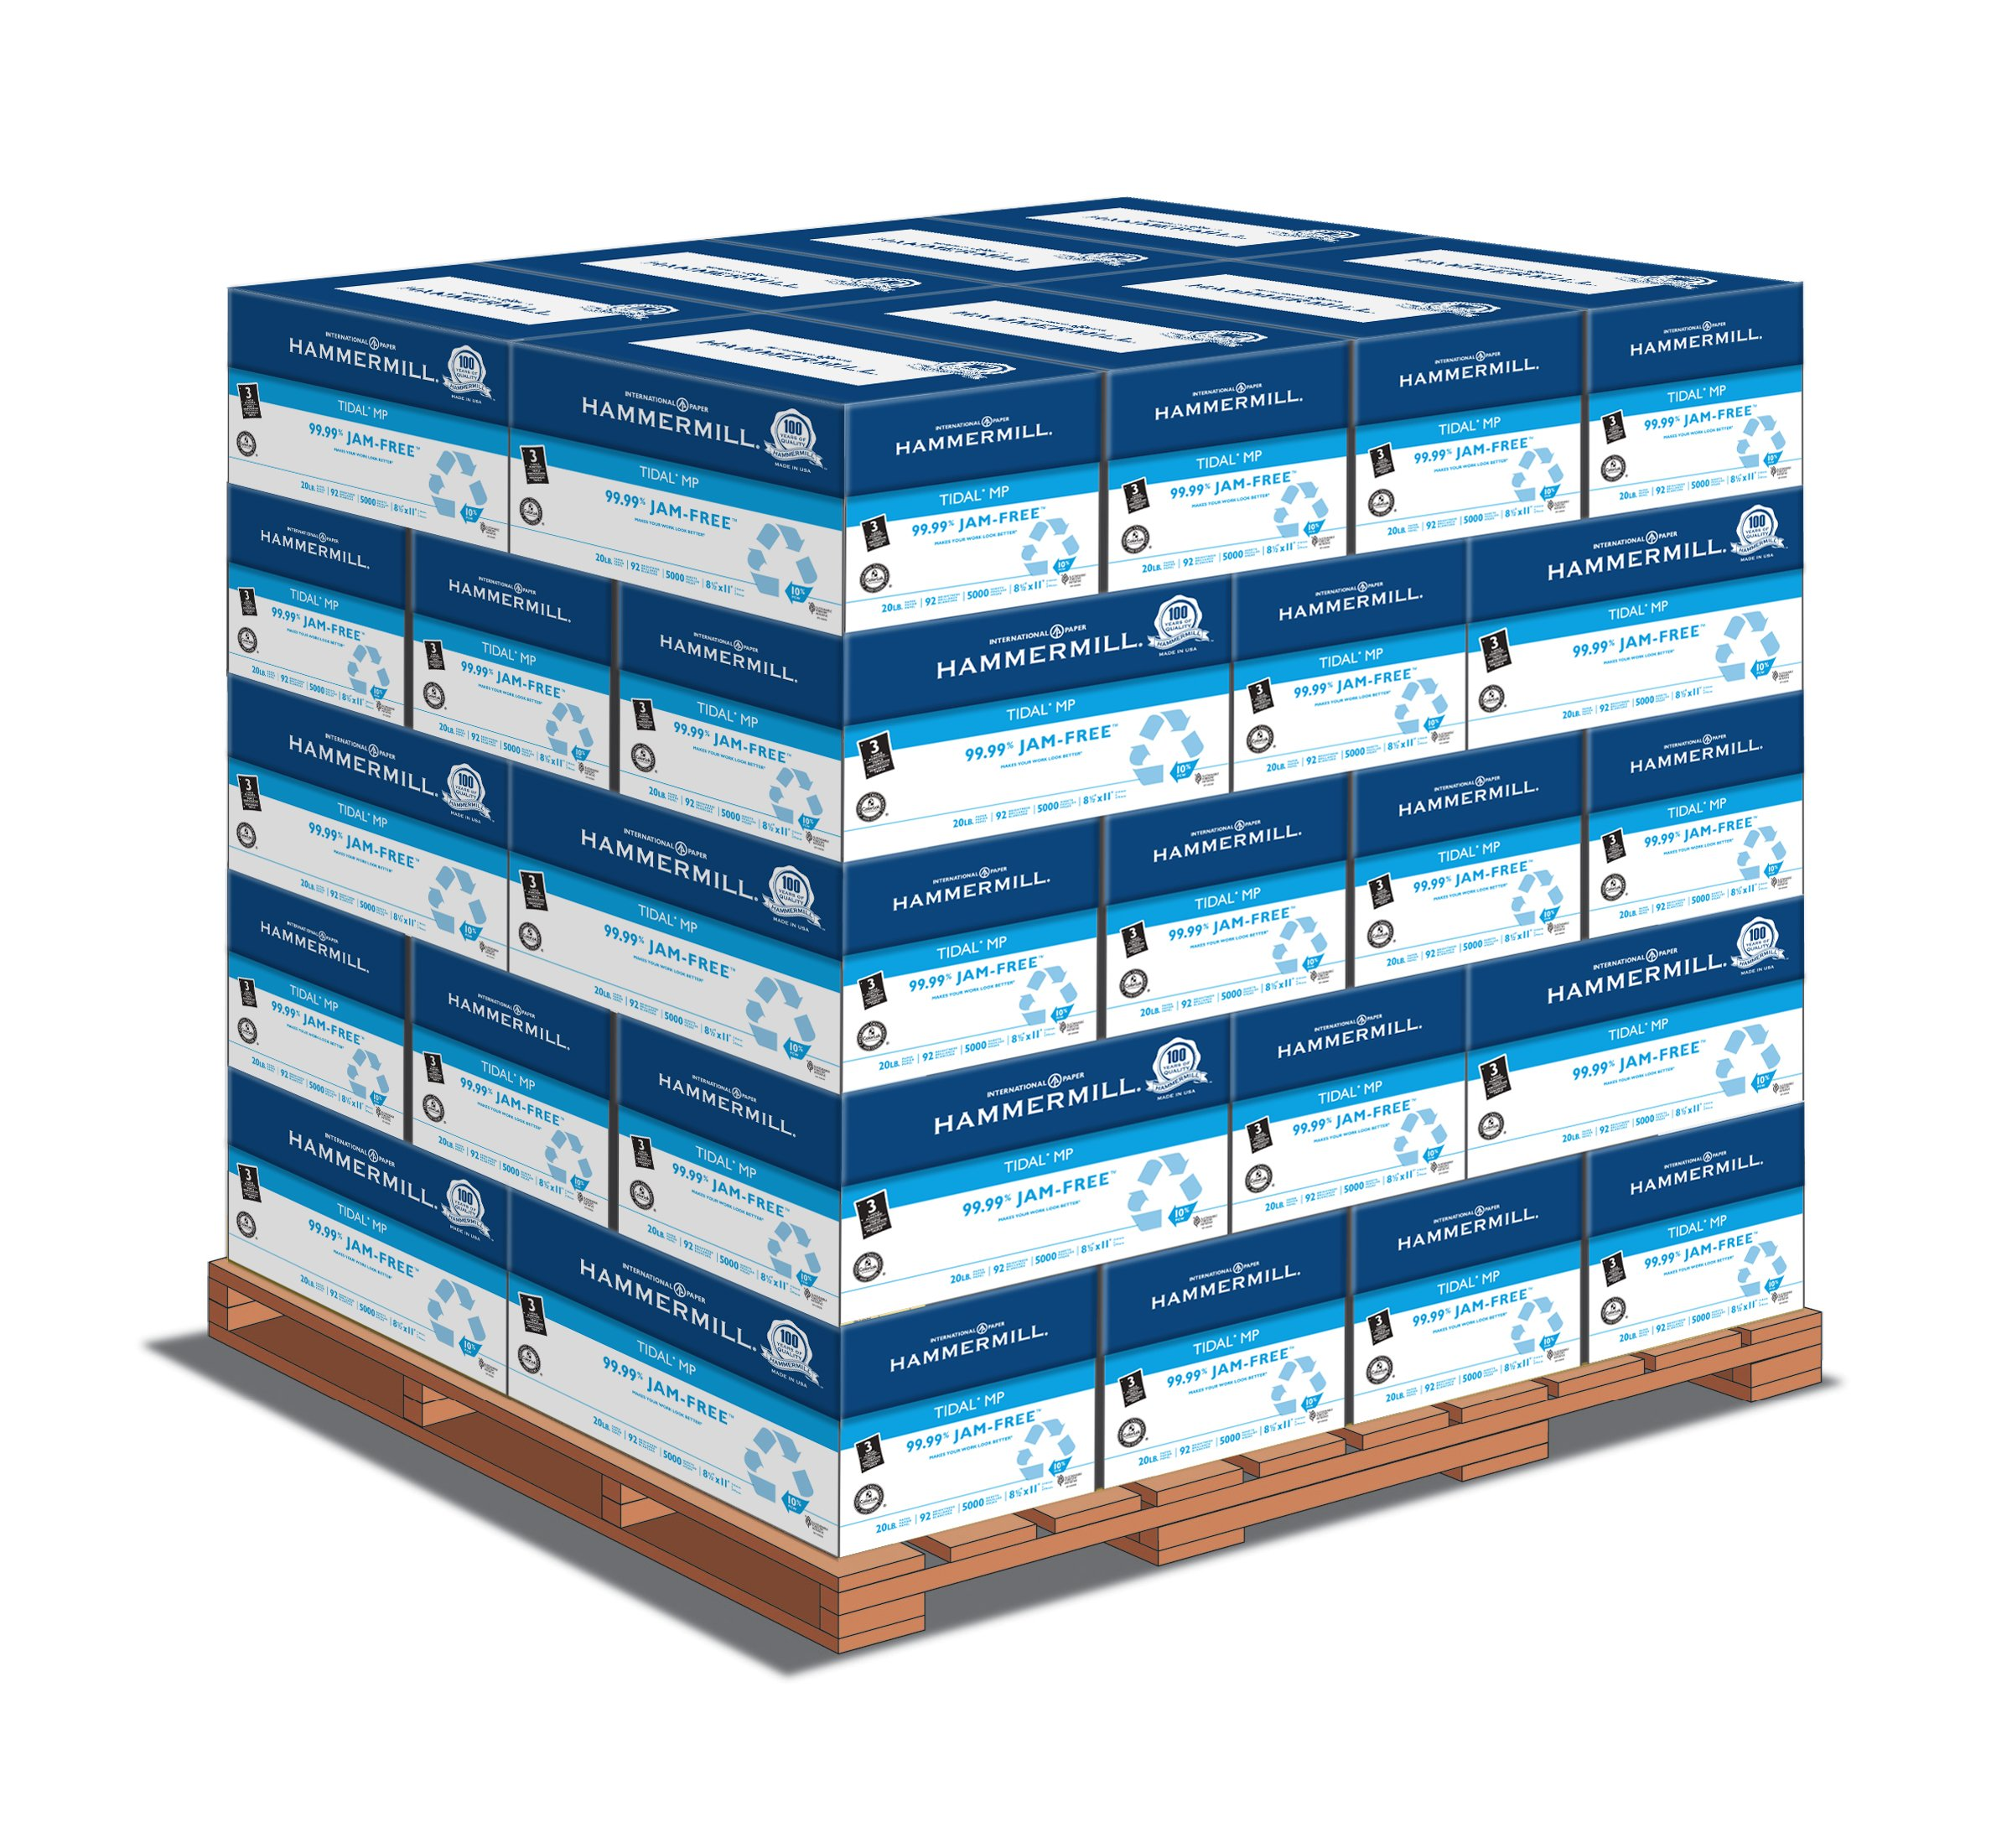 Hammermill Paper, Tidal Multipurpose, 8.5 x 11, Letter, 20lb, 3 Hole Punched, 92 Bright, 5000 Sheets per Carton - 40 Cartons per Pallet, 200,000 Sheets (162032PLT) Pallet Pricing, Made In The USA